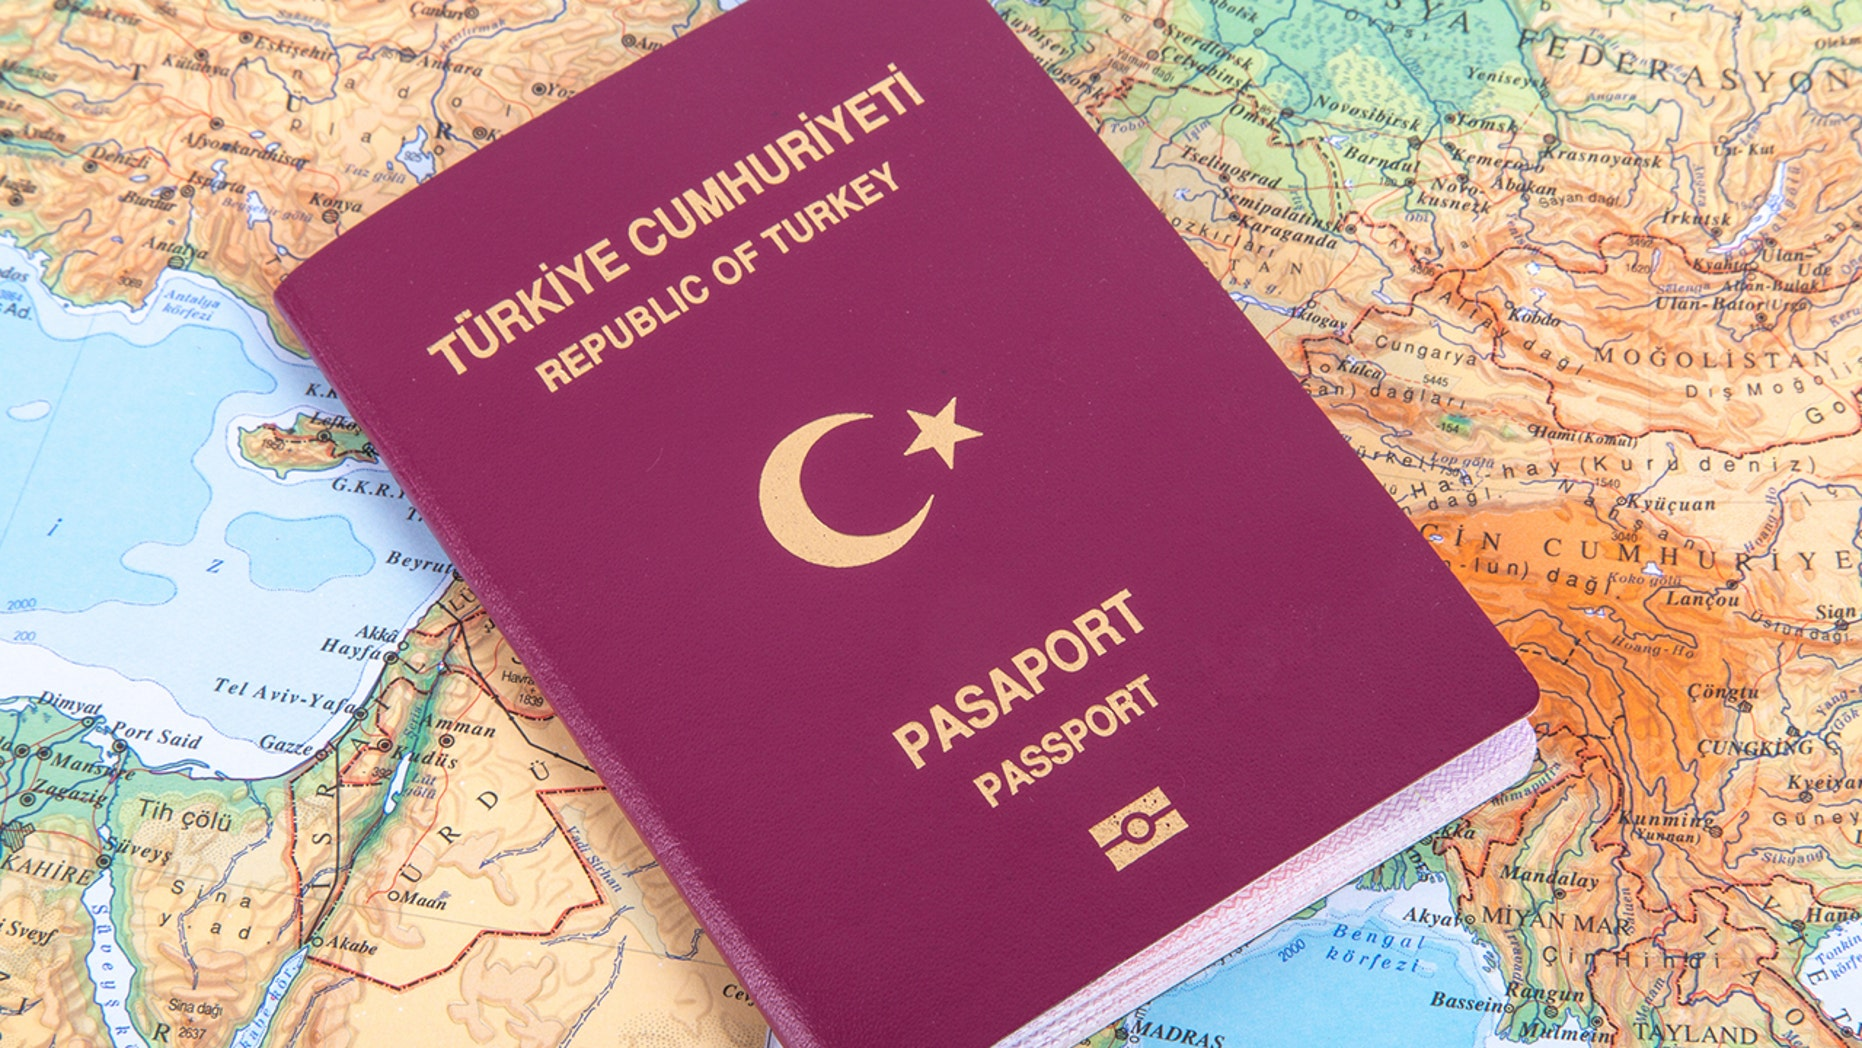 The American embassy has resumed full visa services for Turkish nationals.